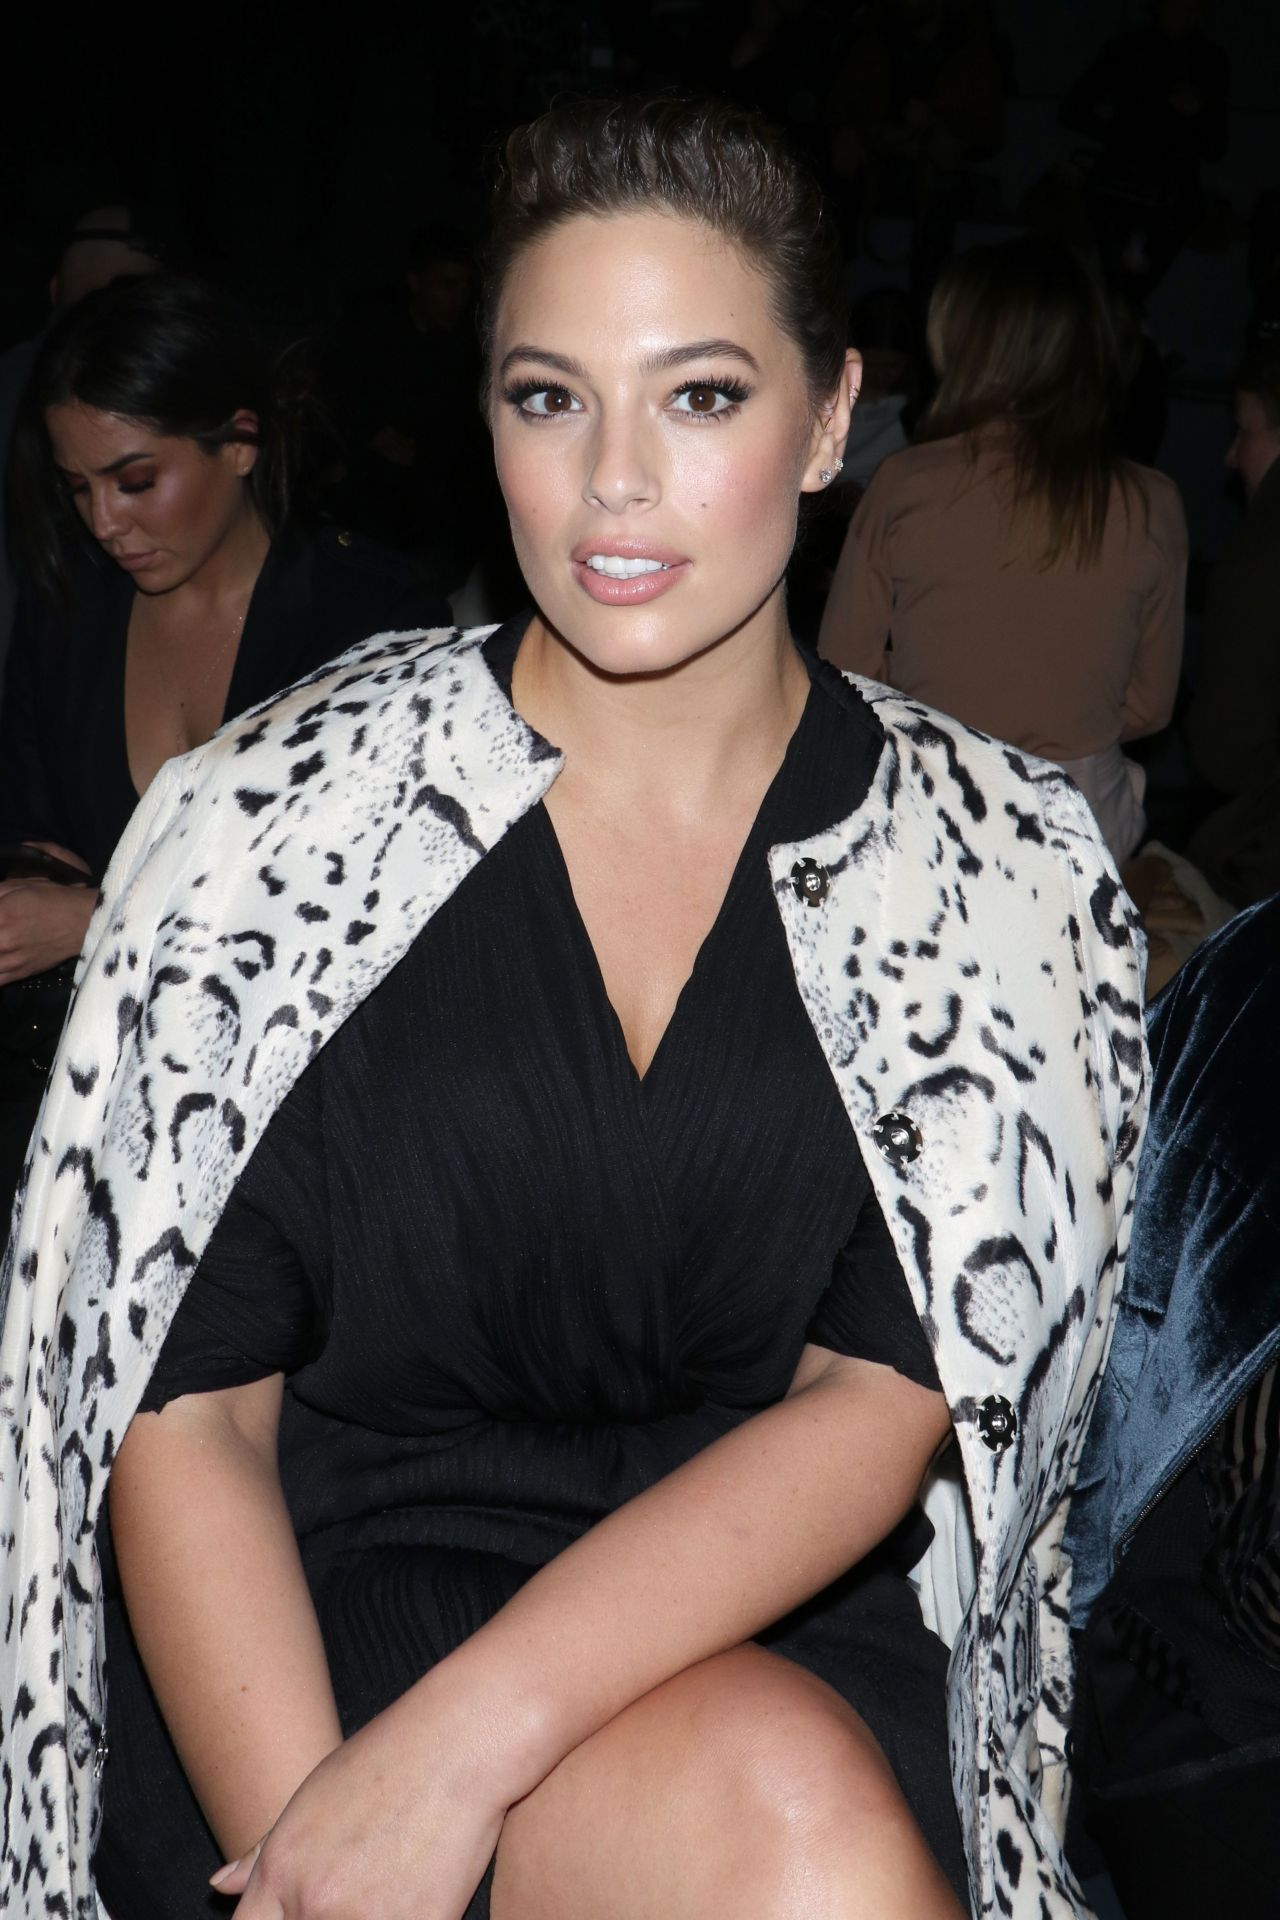 ashley graham - photo #7